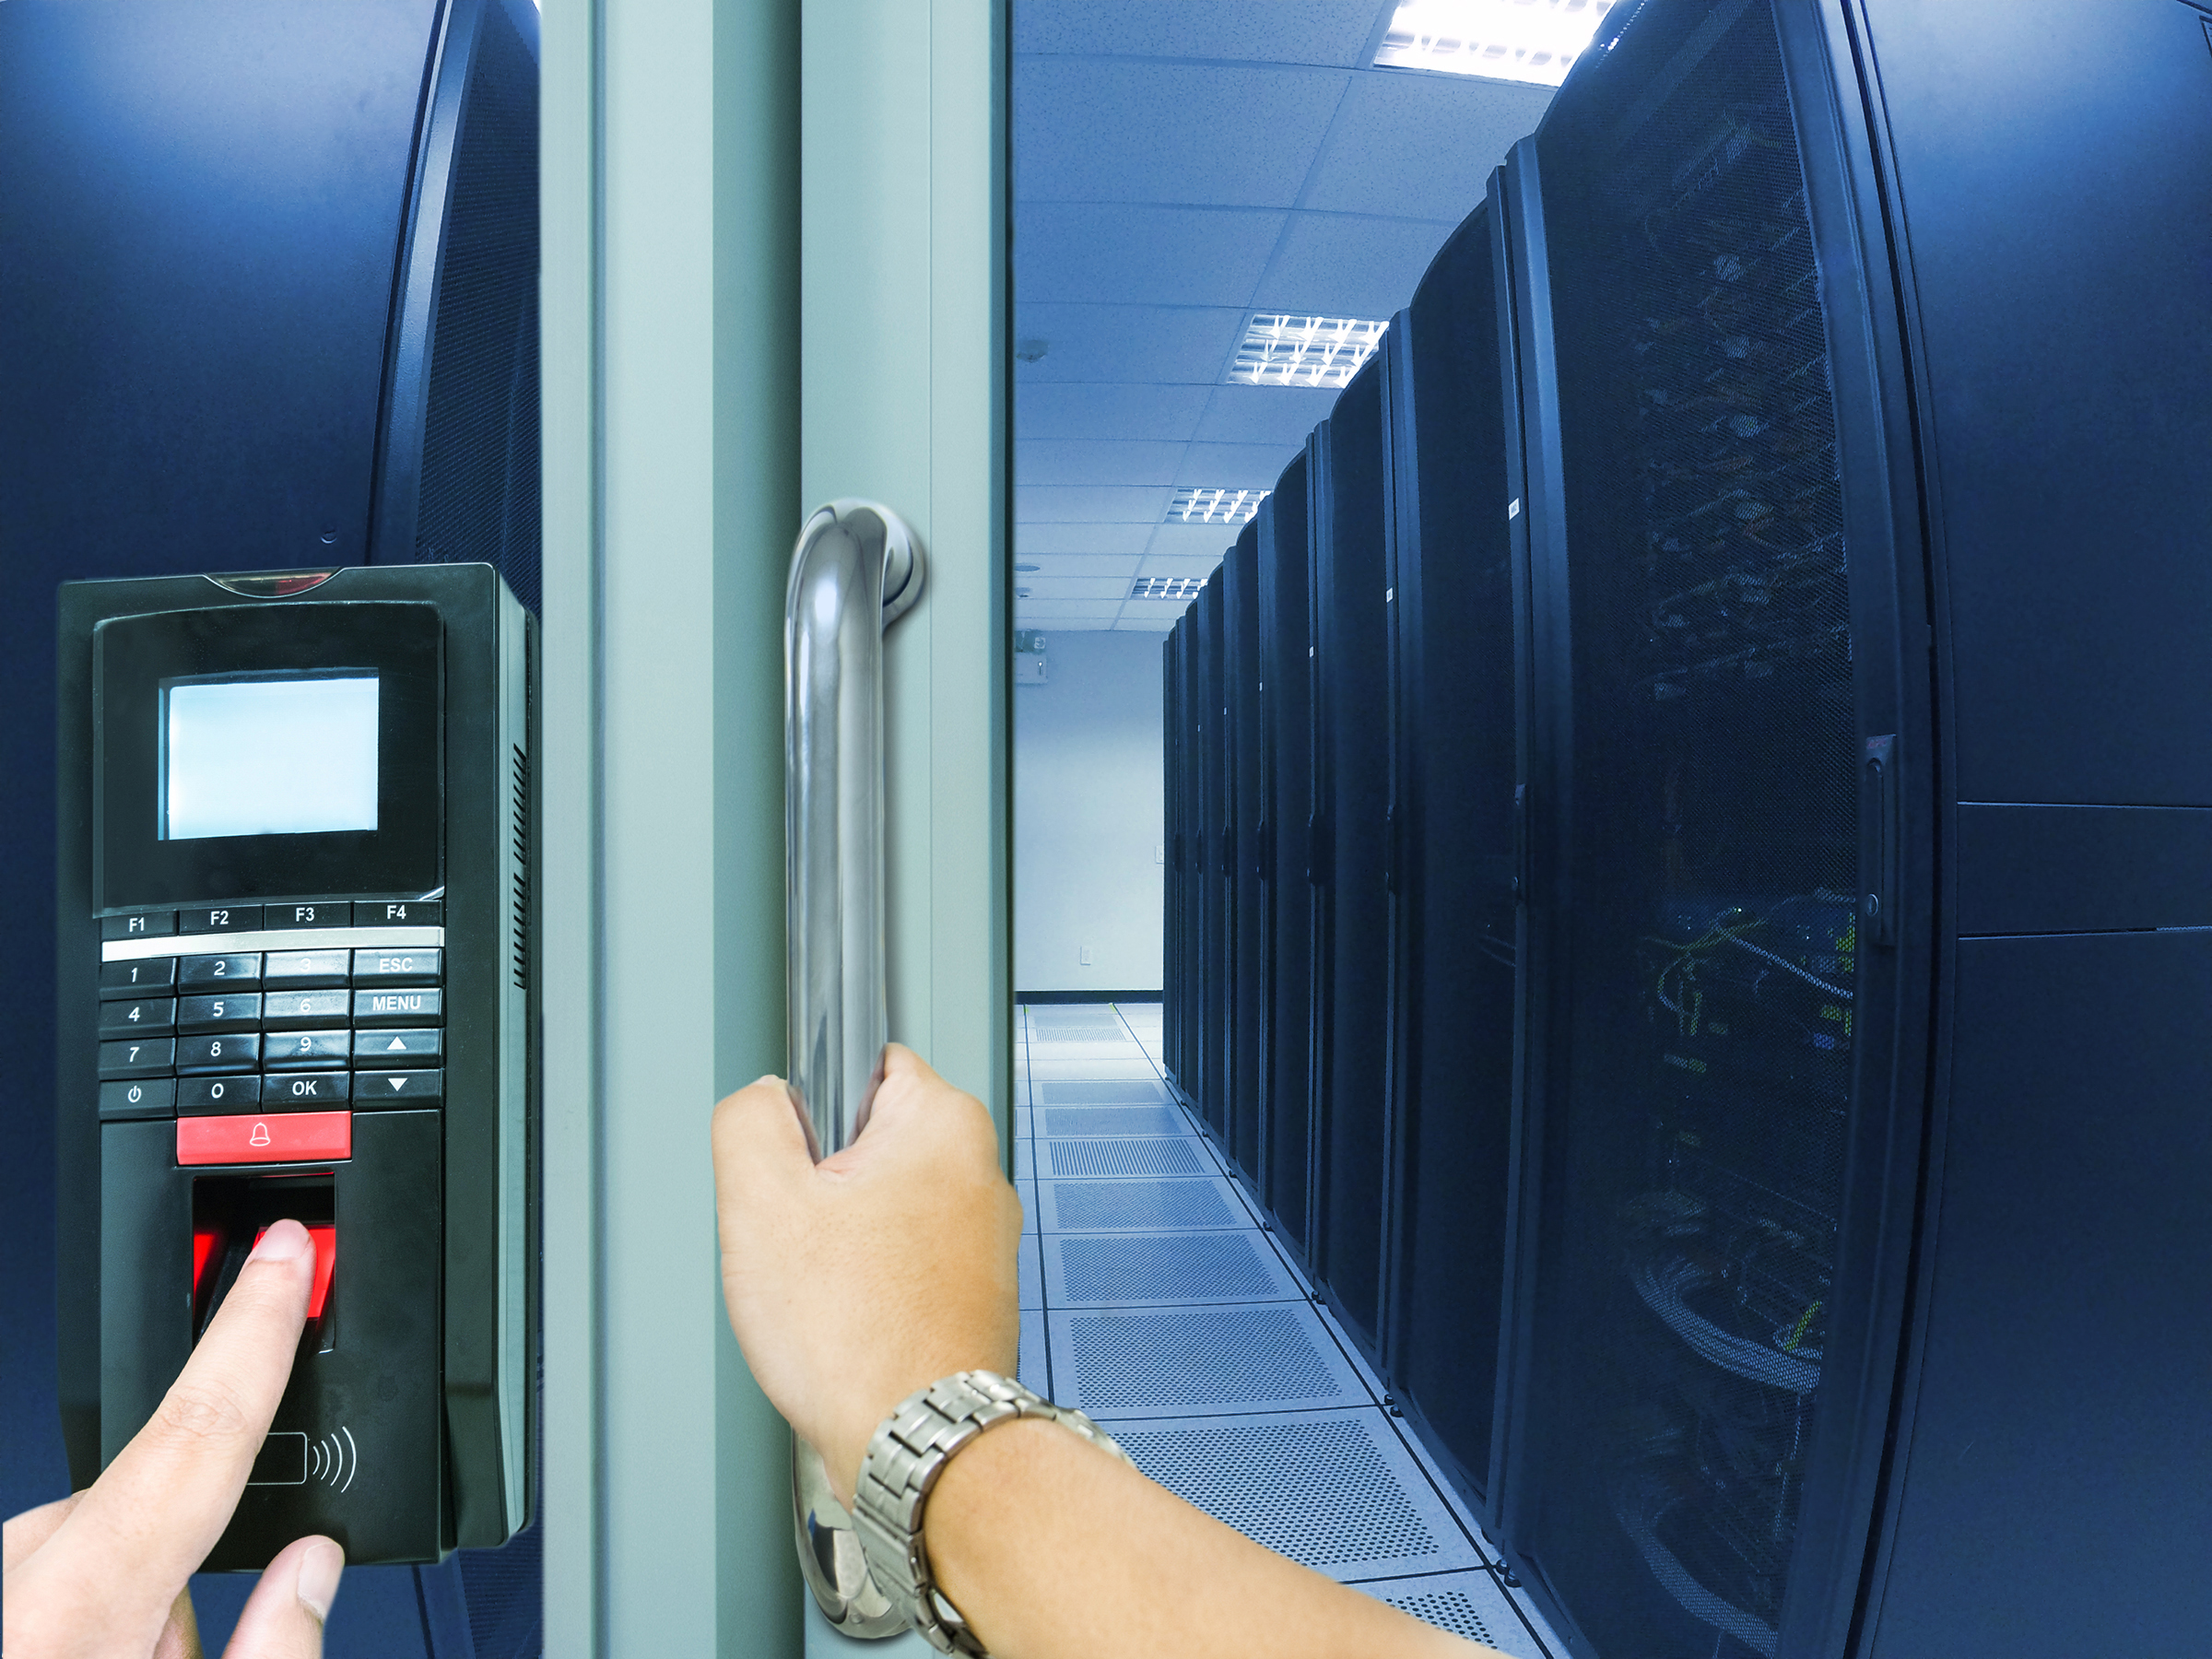 Access Control Systems Help St Petersburg Property Owners